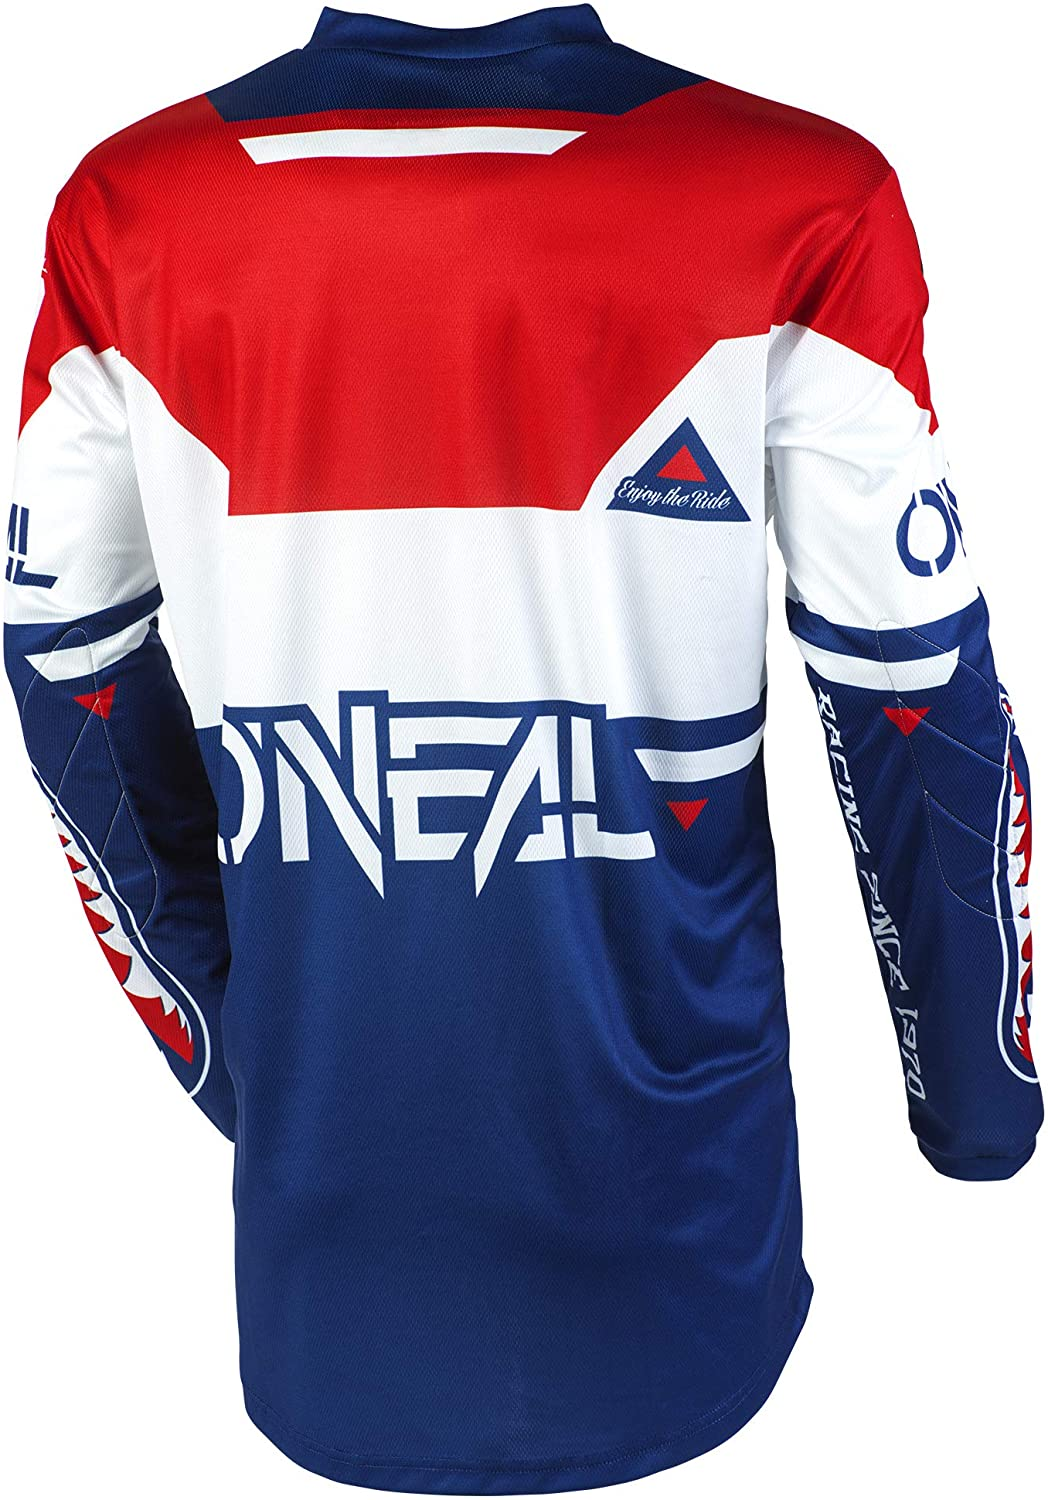 Blue//Red, L ONeal E001-414  Element Warhawk Adult Jersey